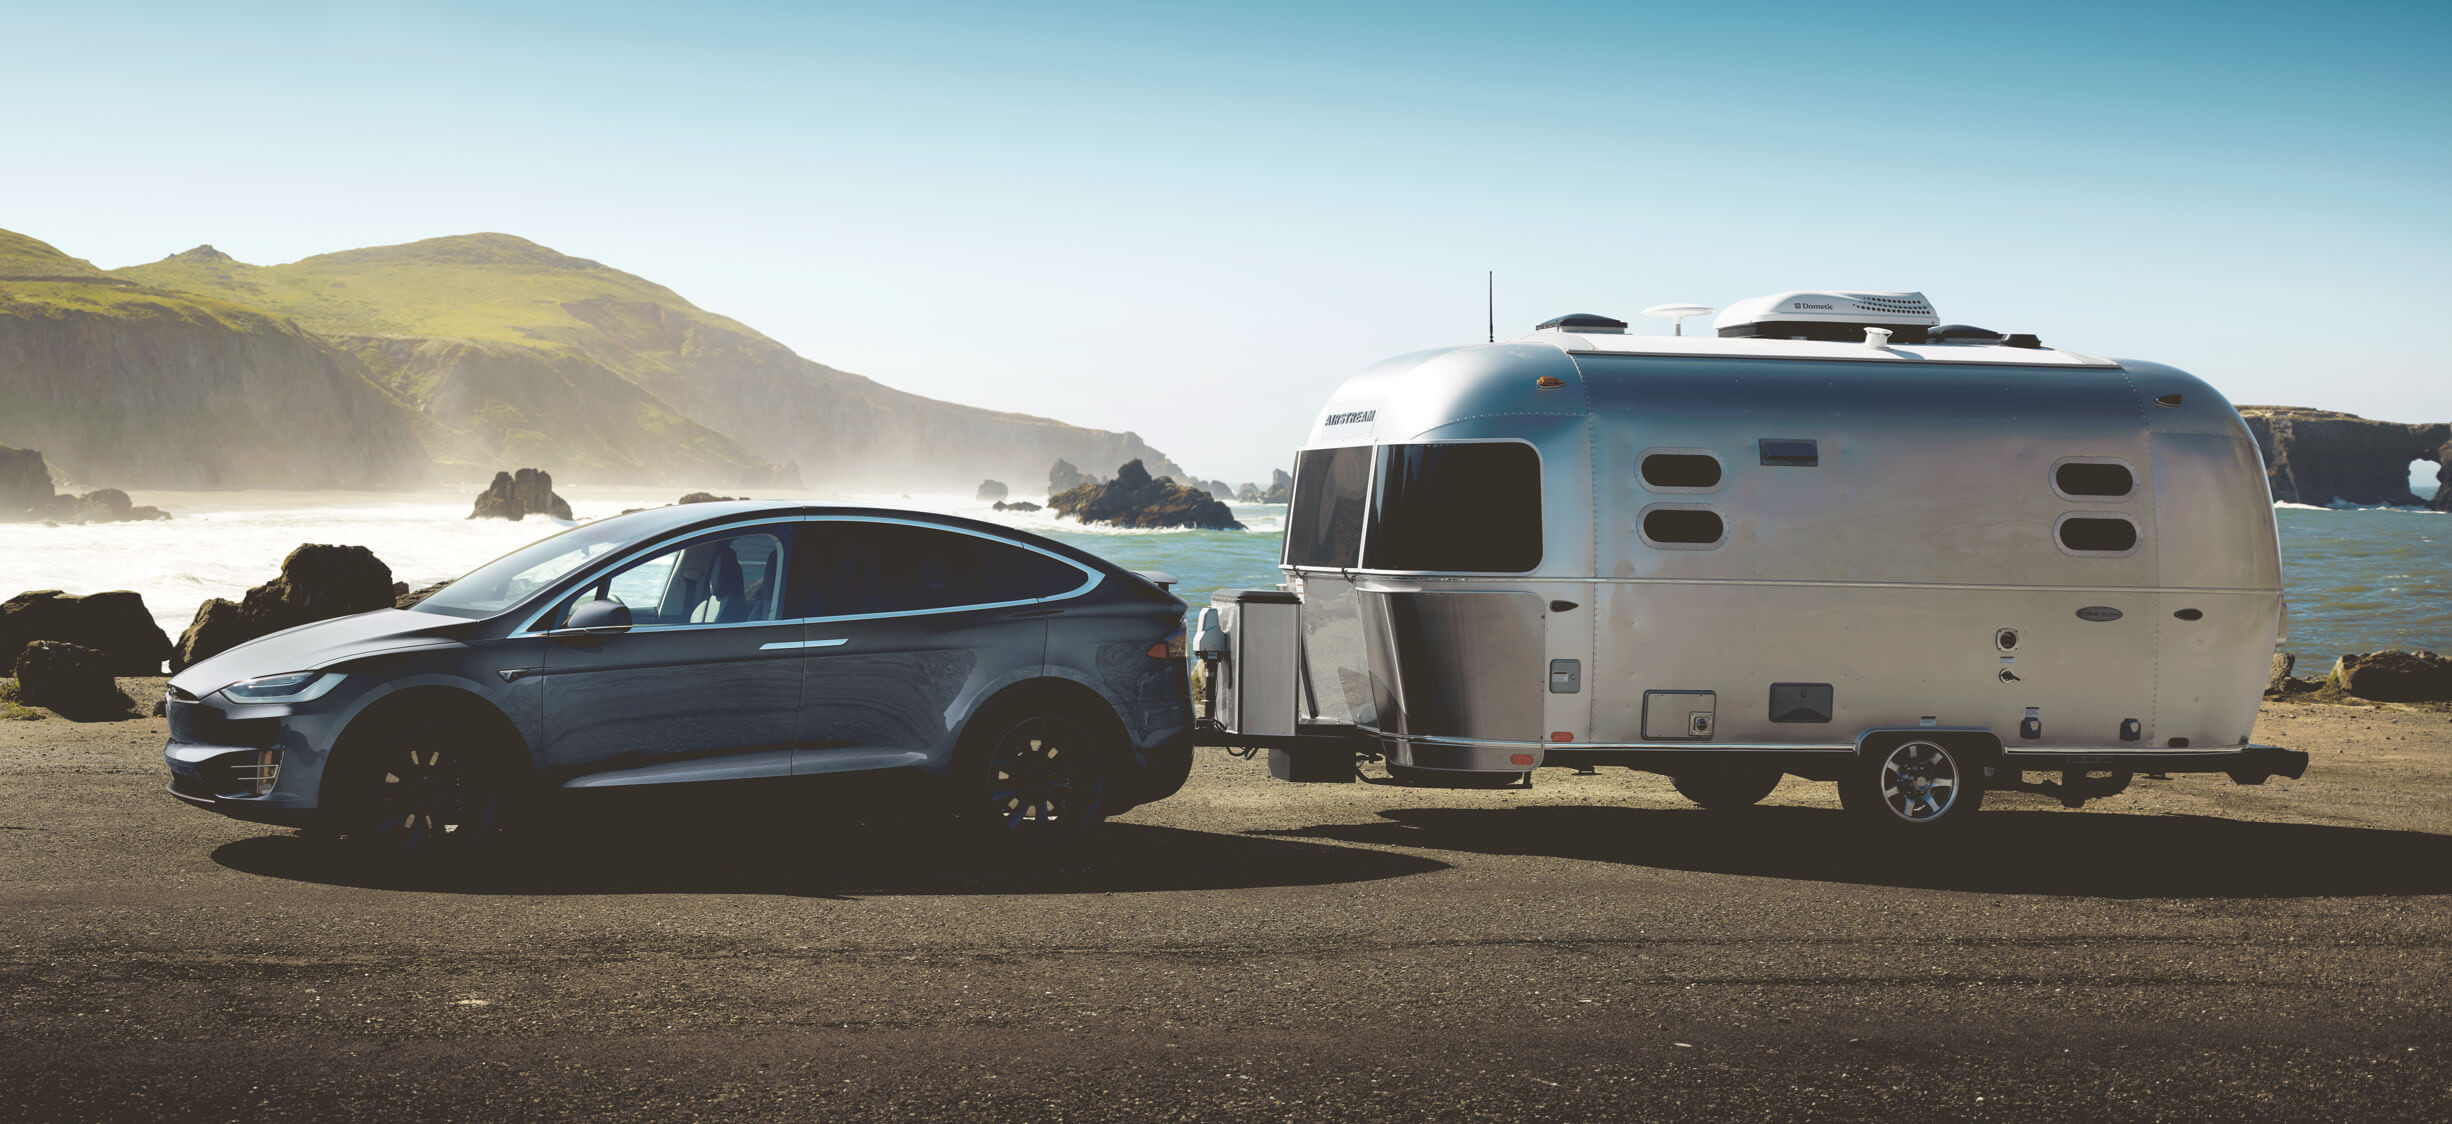 Midnight silver metallic Model X towing a silver travel trailer